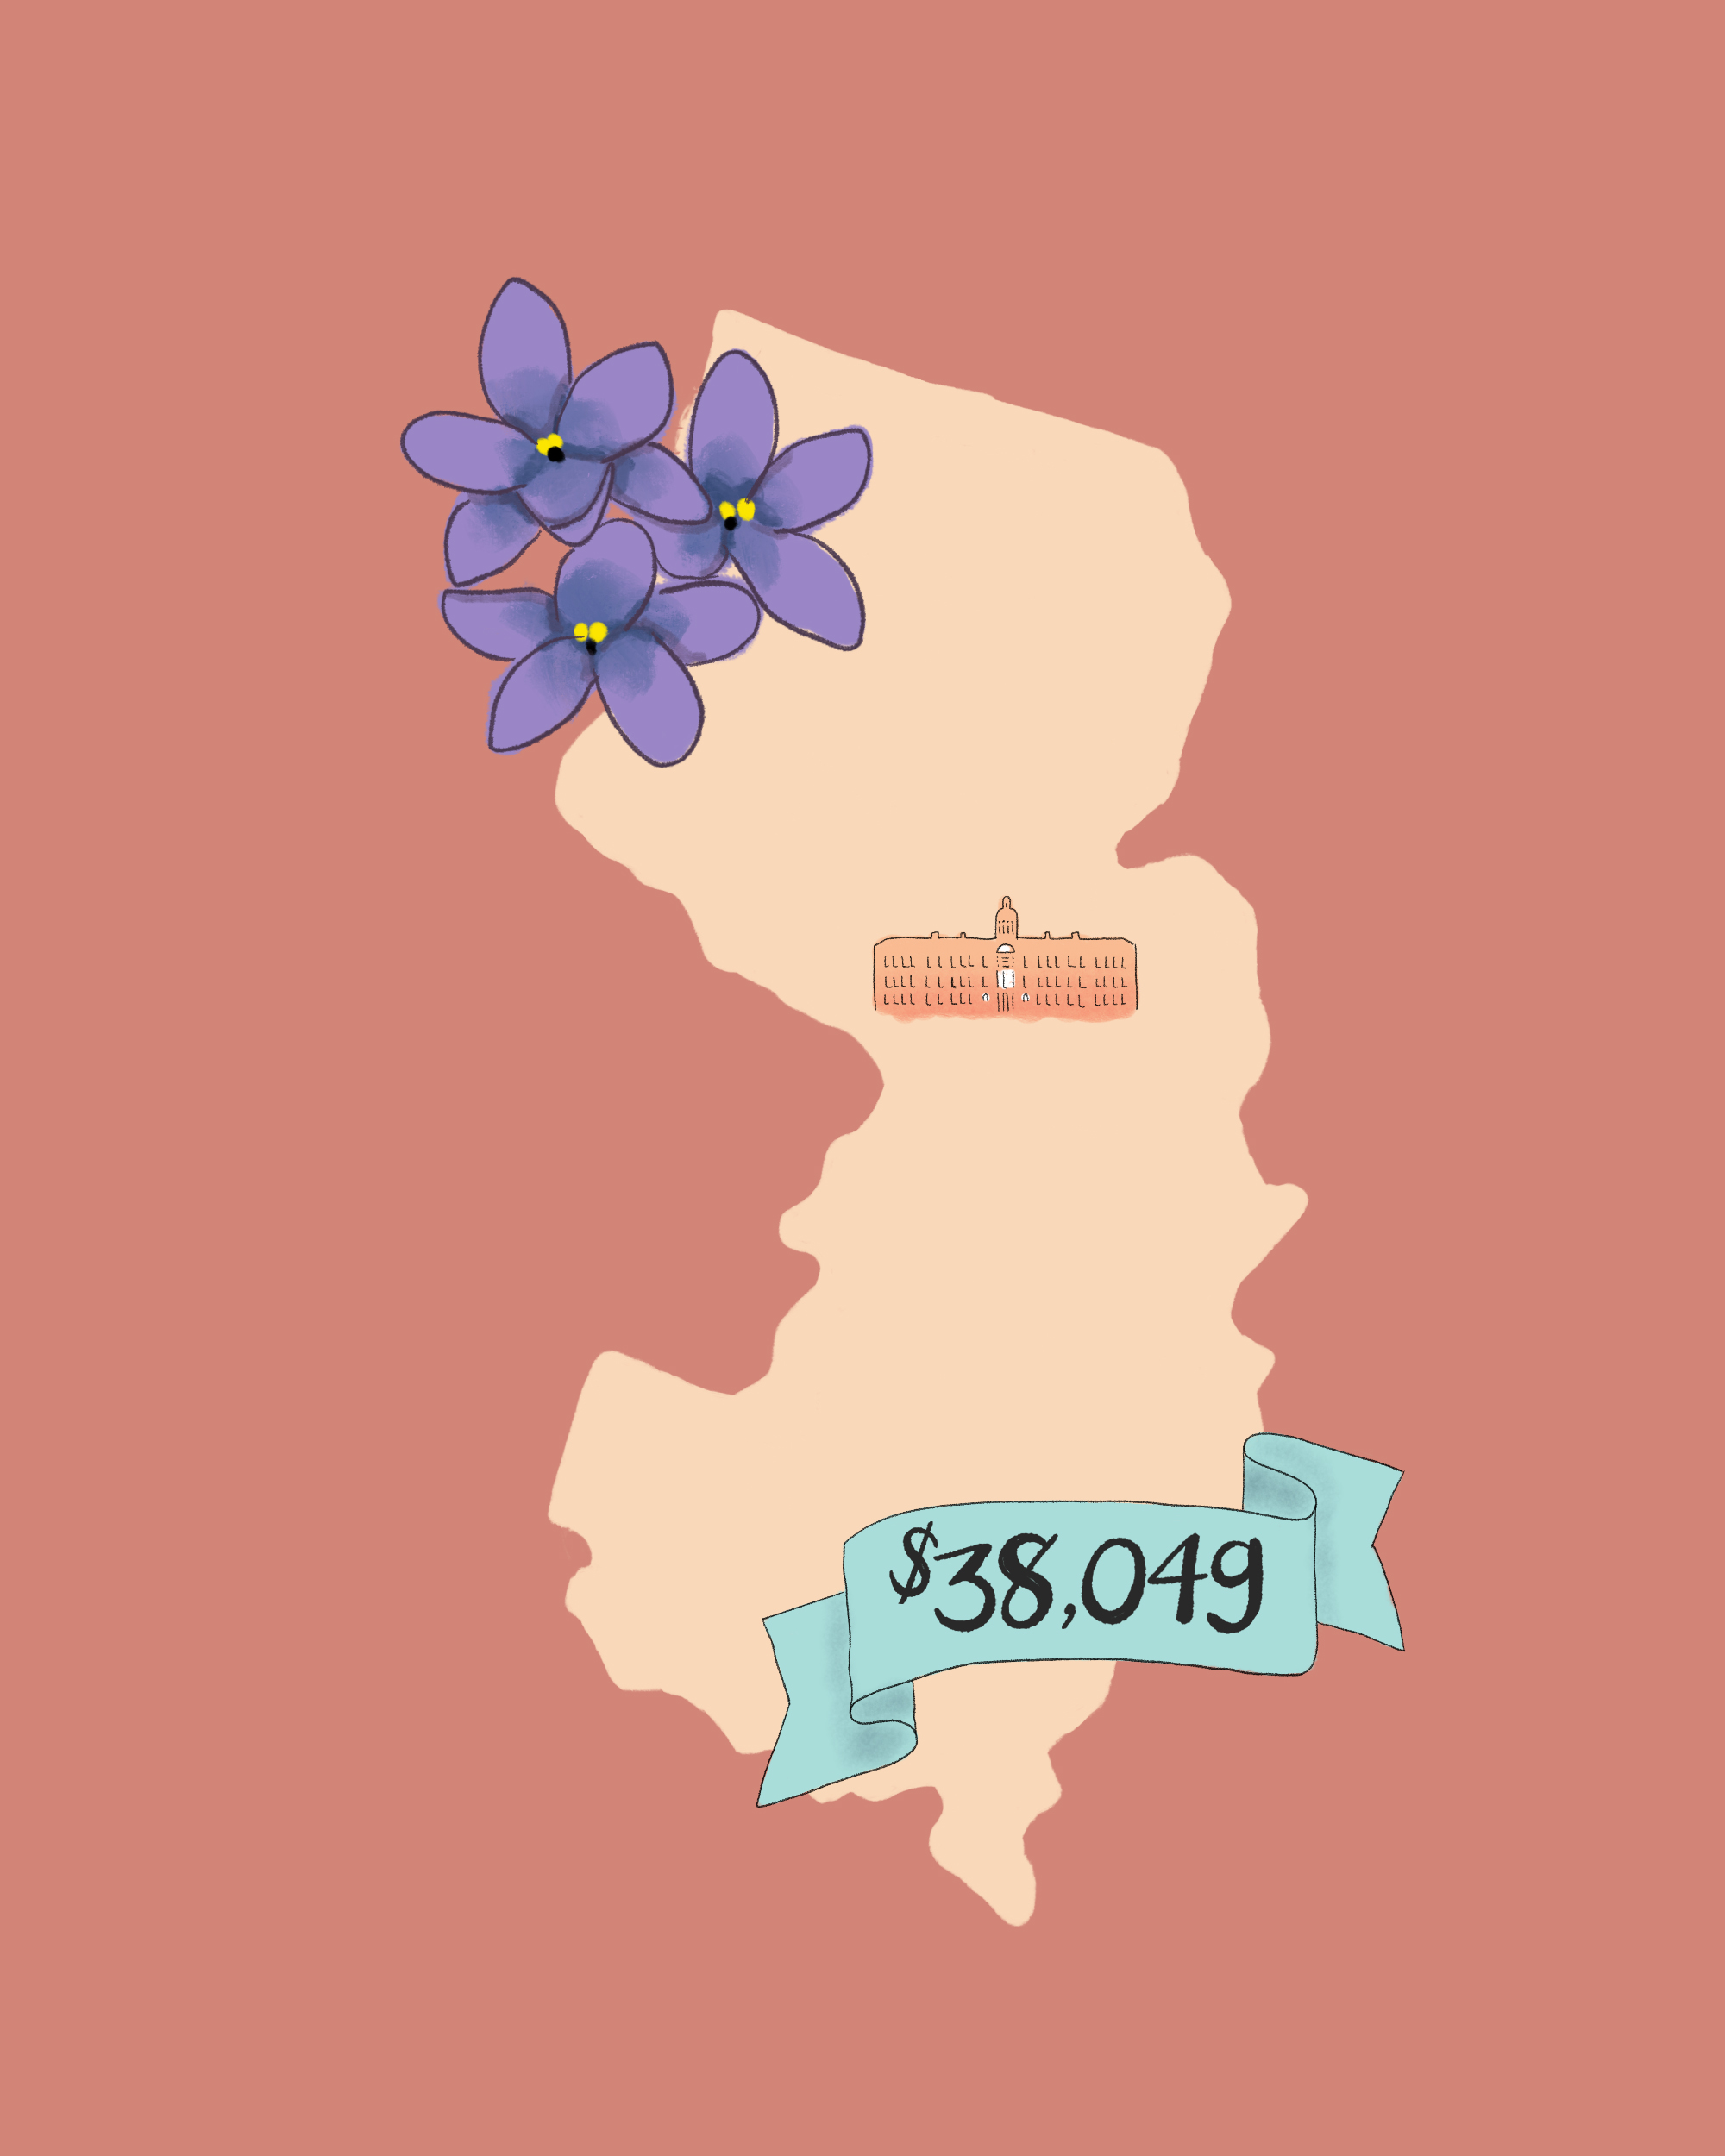 state wedding costs illustration new jersey